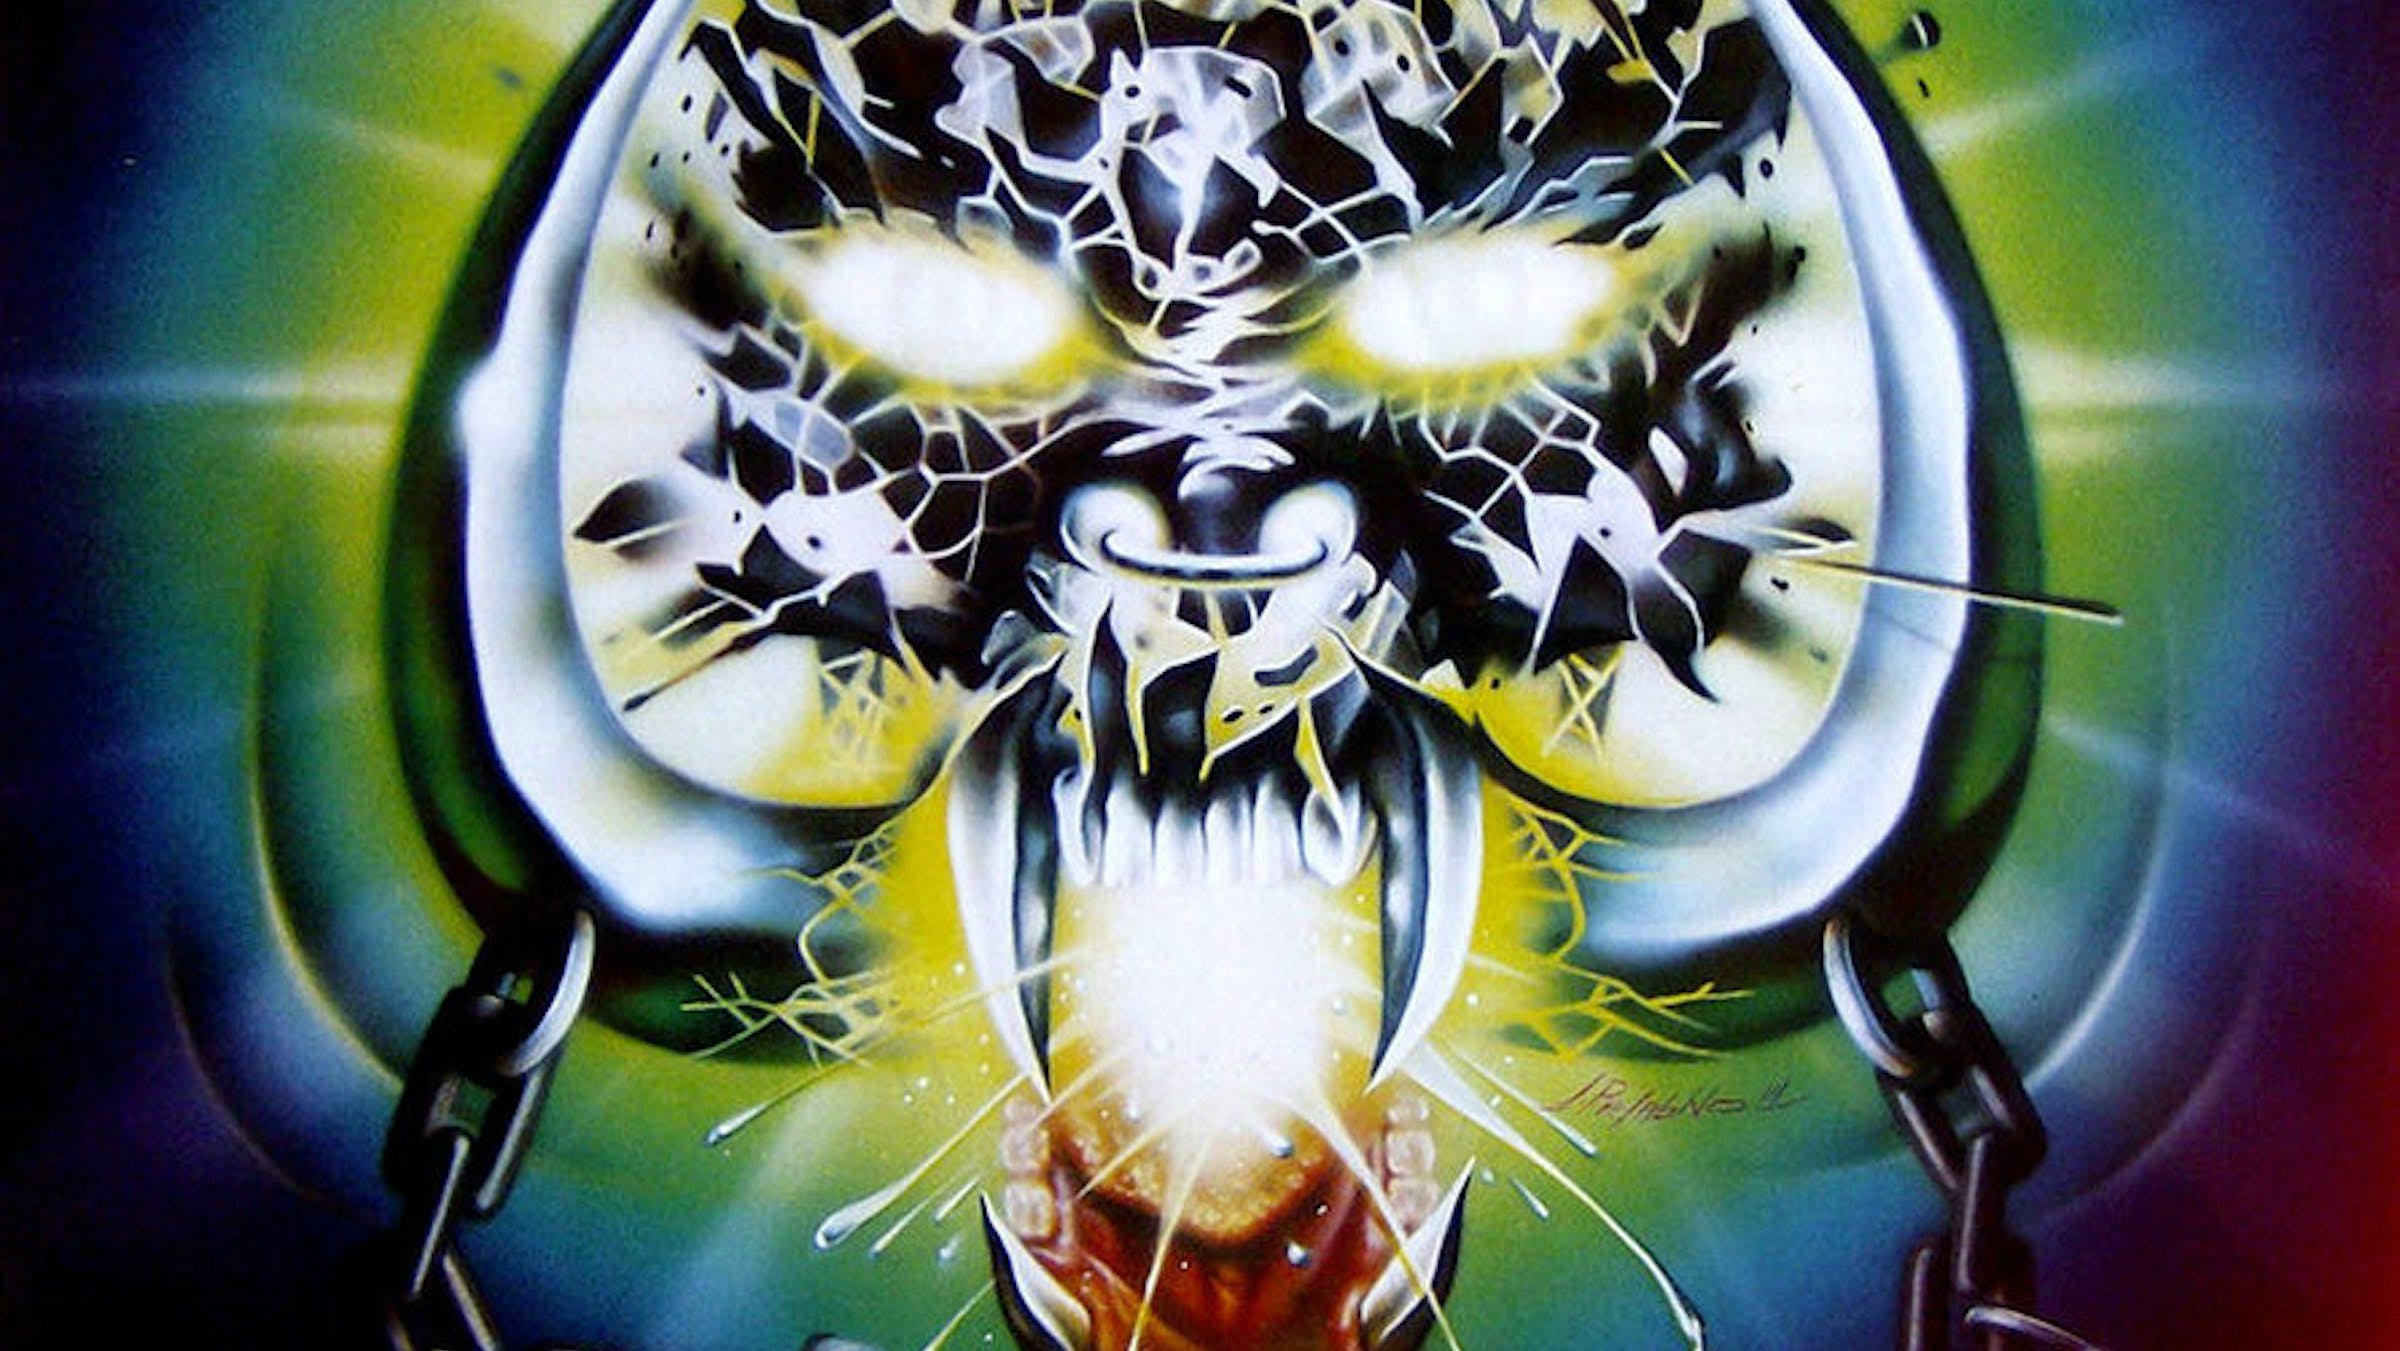 40 Years On, Motörhead's Overkill Is As Awesome As Ever — Kerrang!